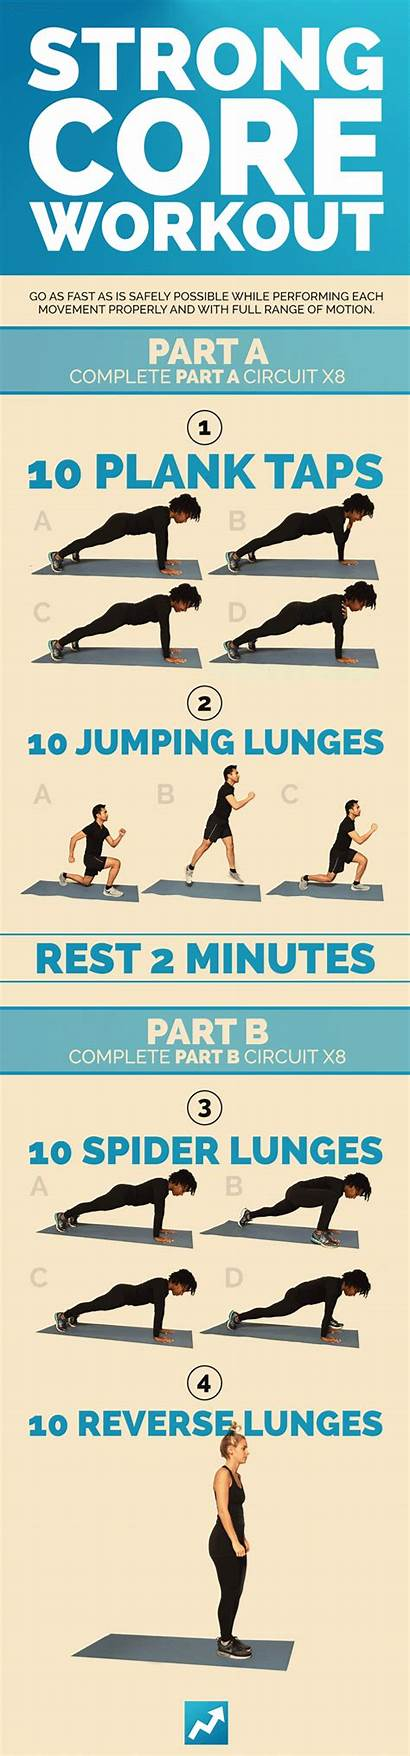 Workouts Workout Buzzfeed Quick Core Equipment Total